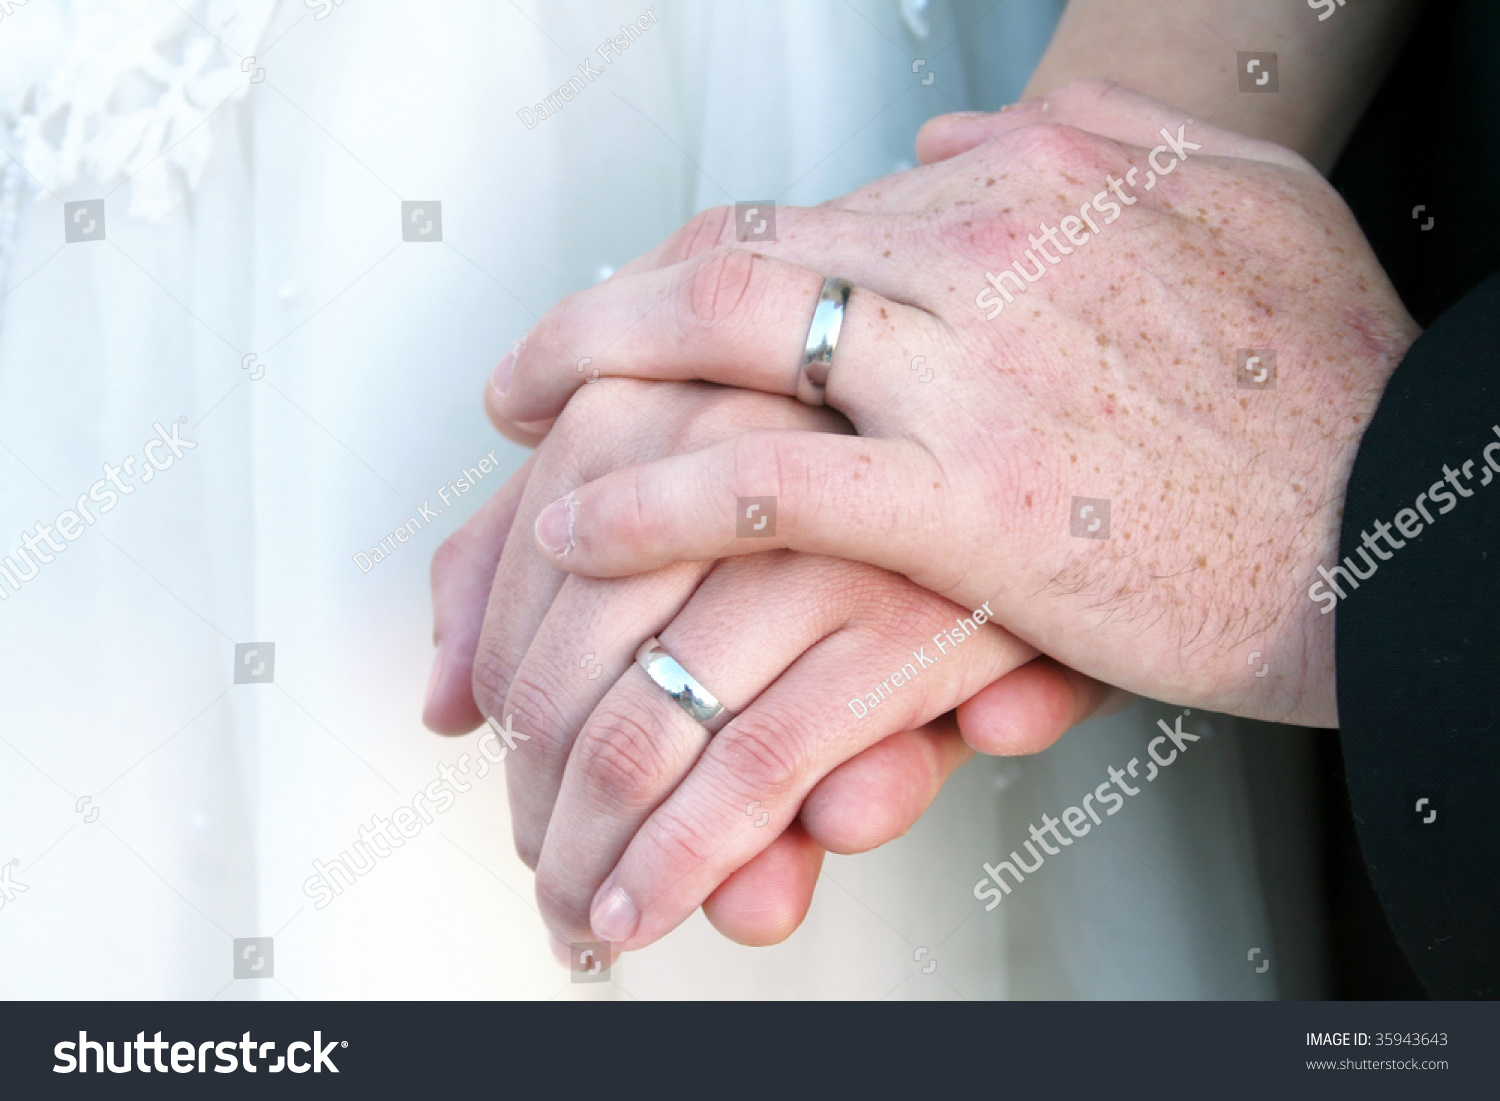 Newlywed Couples Hands Wedding Rings Used Stock Photo (Edit Now ...